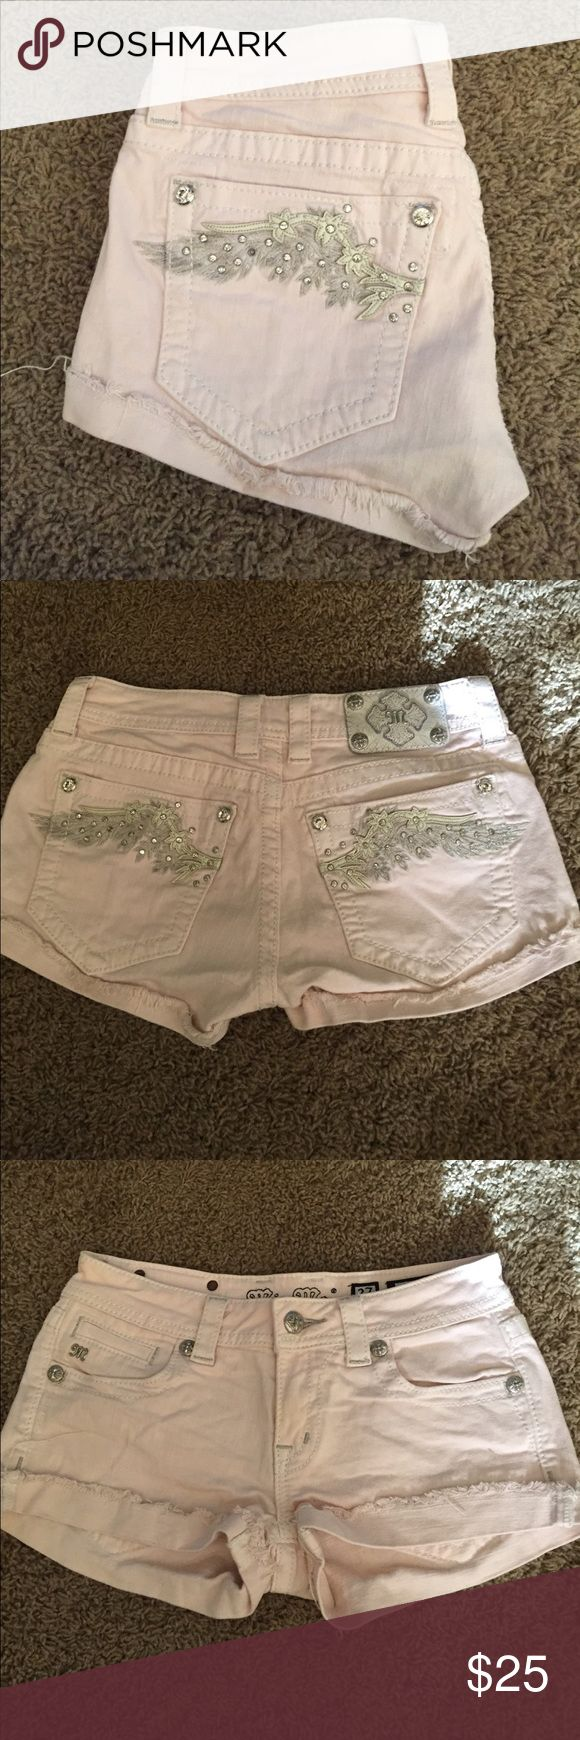 Miss me shorts Light pink miss me shorts jeweled wings embellished pockets. Missing one jem. Gently used Miss Me Shorts Jean Shorts